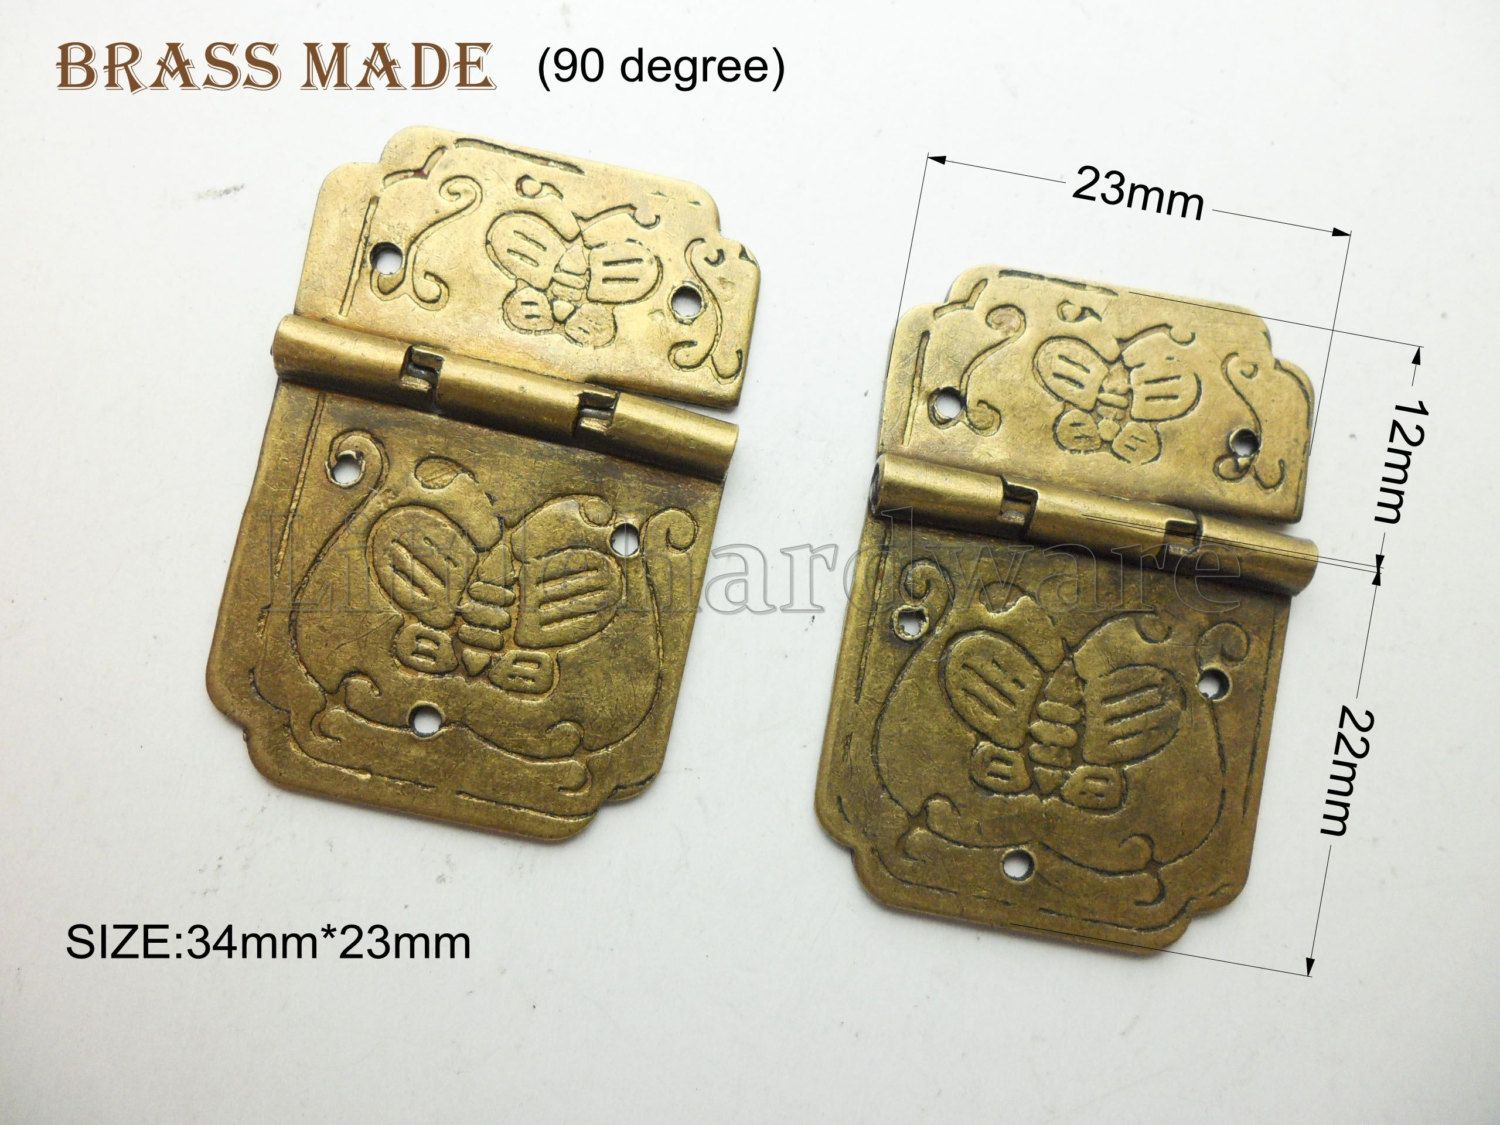 2 Pcs Brass Made 34mmx23mm 90 Degree Asymmetric Quot Butterfly Quot Metal Hinges Parliament Hinges Jewelr Jewelry Box Hinges Parliament Hinges Antique Hinges